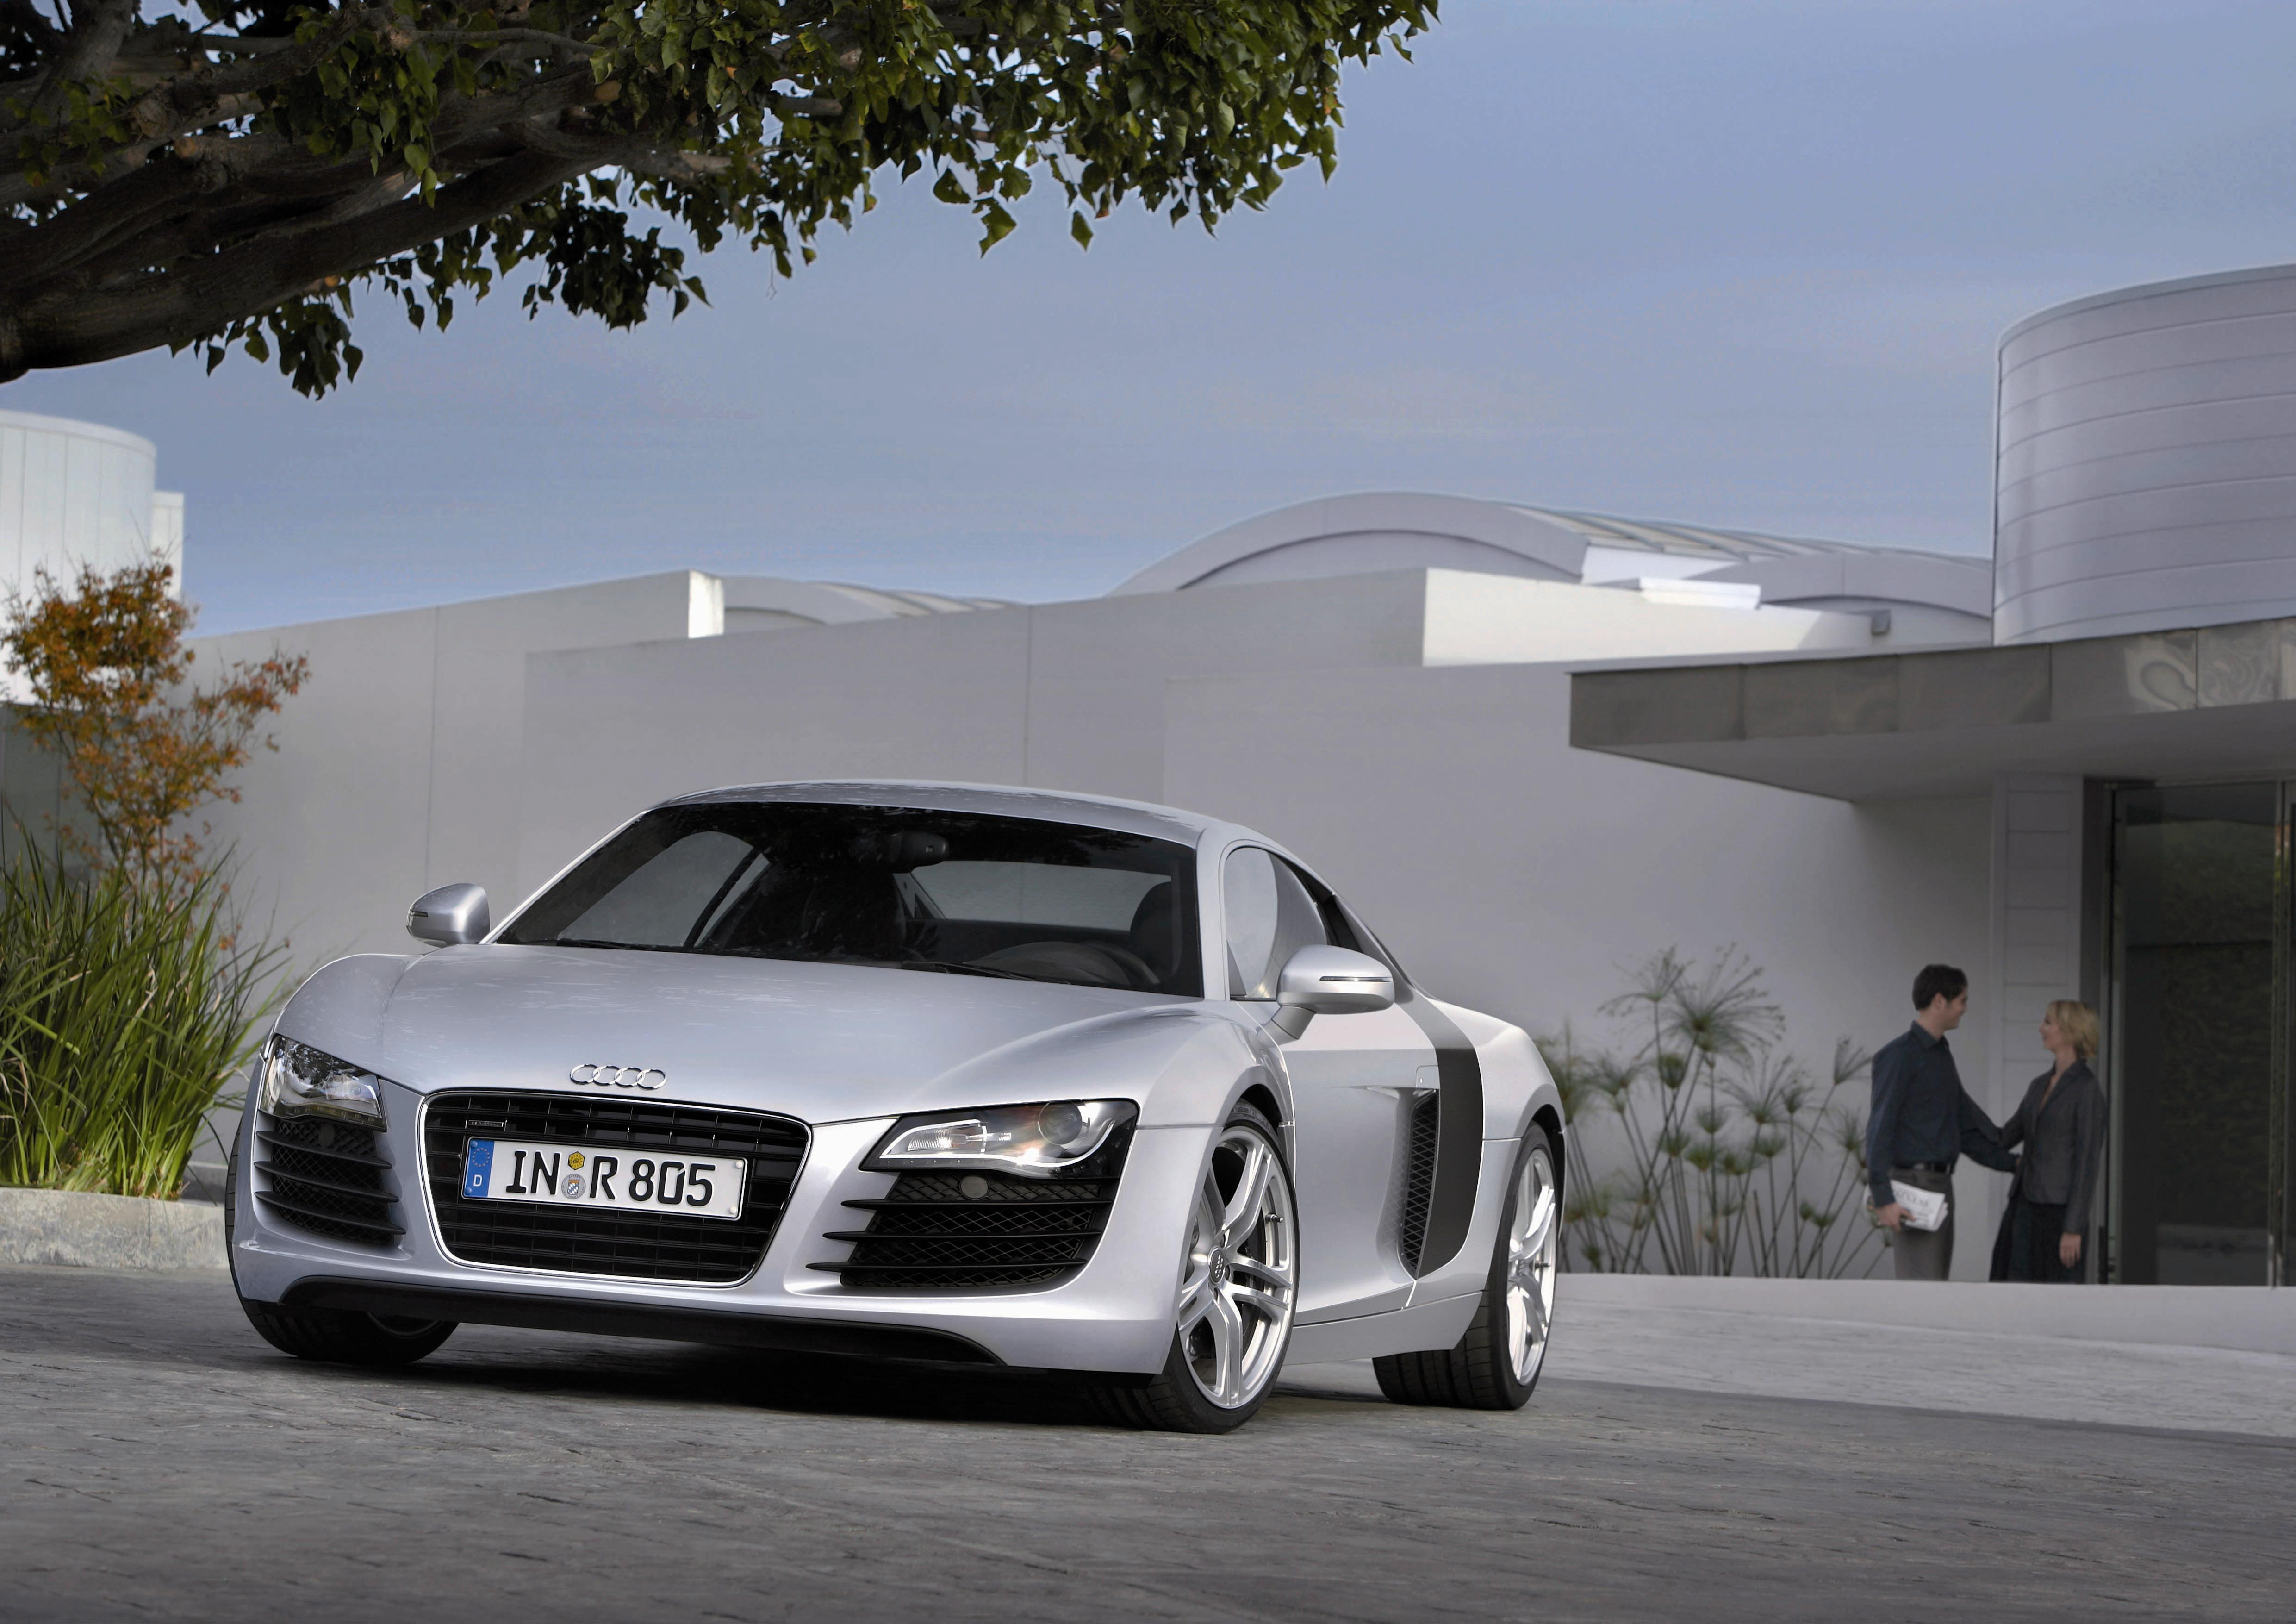 2008 audi r8 review - top speed